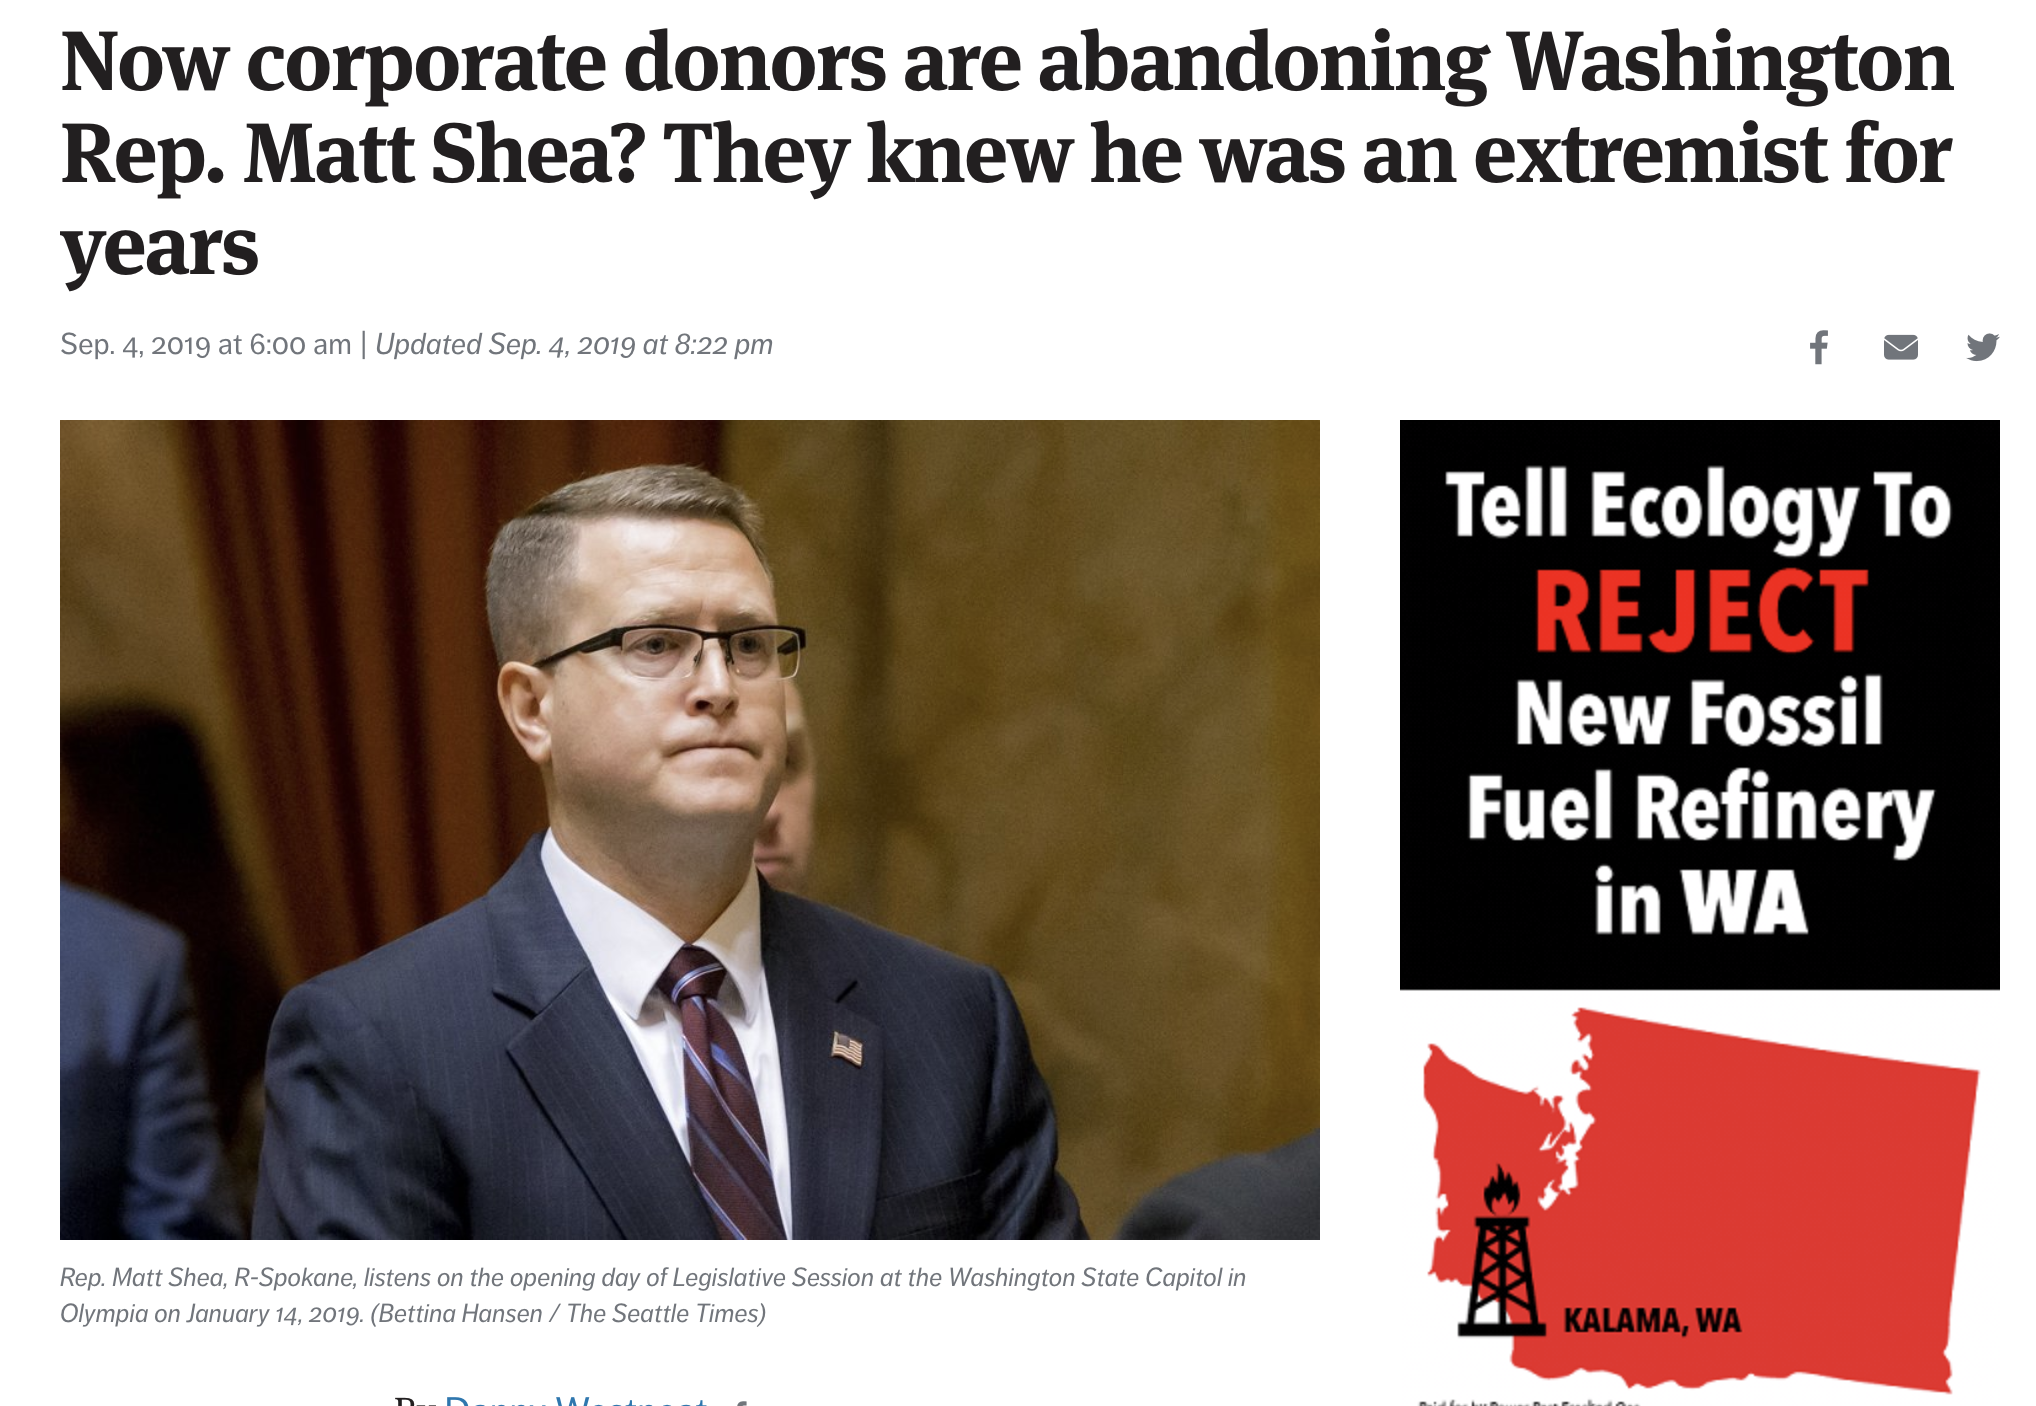 """When corporate spokespeople sing the same platitudes as if in a chorus, it's a dead giveaway. You just know they're covering for something.  So I had to shake my head at how  the business donors who now are fleeing  from state Rep. Matt Shea and his crazy-talk of biblical war all sound as if their statements were mixed in the same political porridge factory.  """"We strongly condemn the views expressed, as they are in direct contrast to our values of diversity and inclusion,"""" said BNSF Railway, which gave $2,000 to help Shea, R-Spokane Valley, get reelected last year, and now wants it back.  READ FULL STORY HERE"""